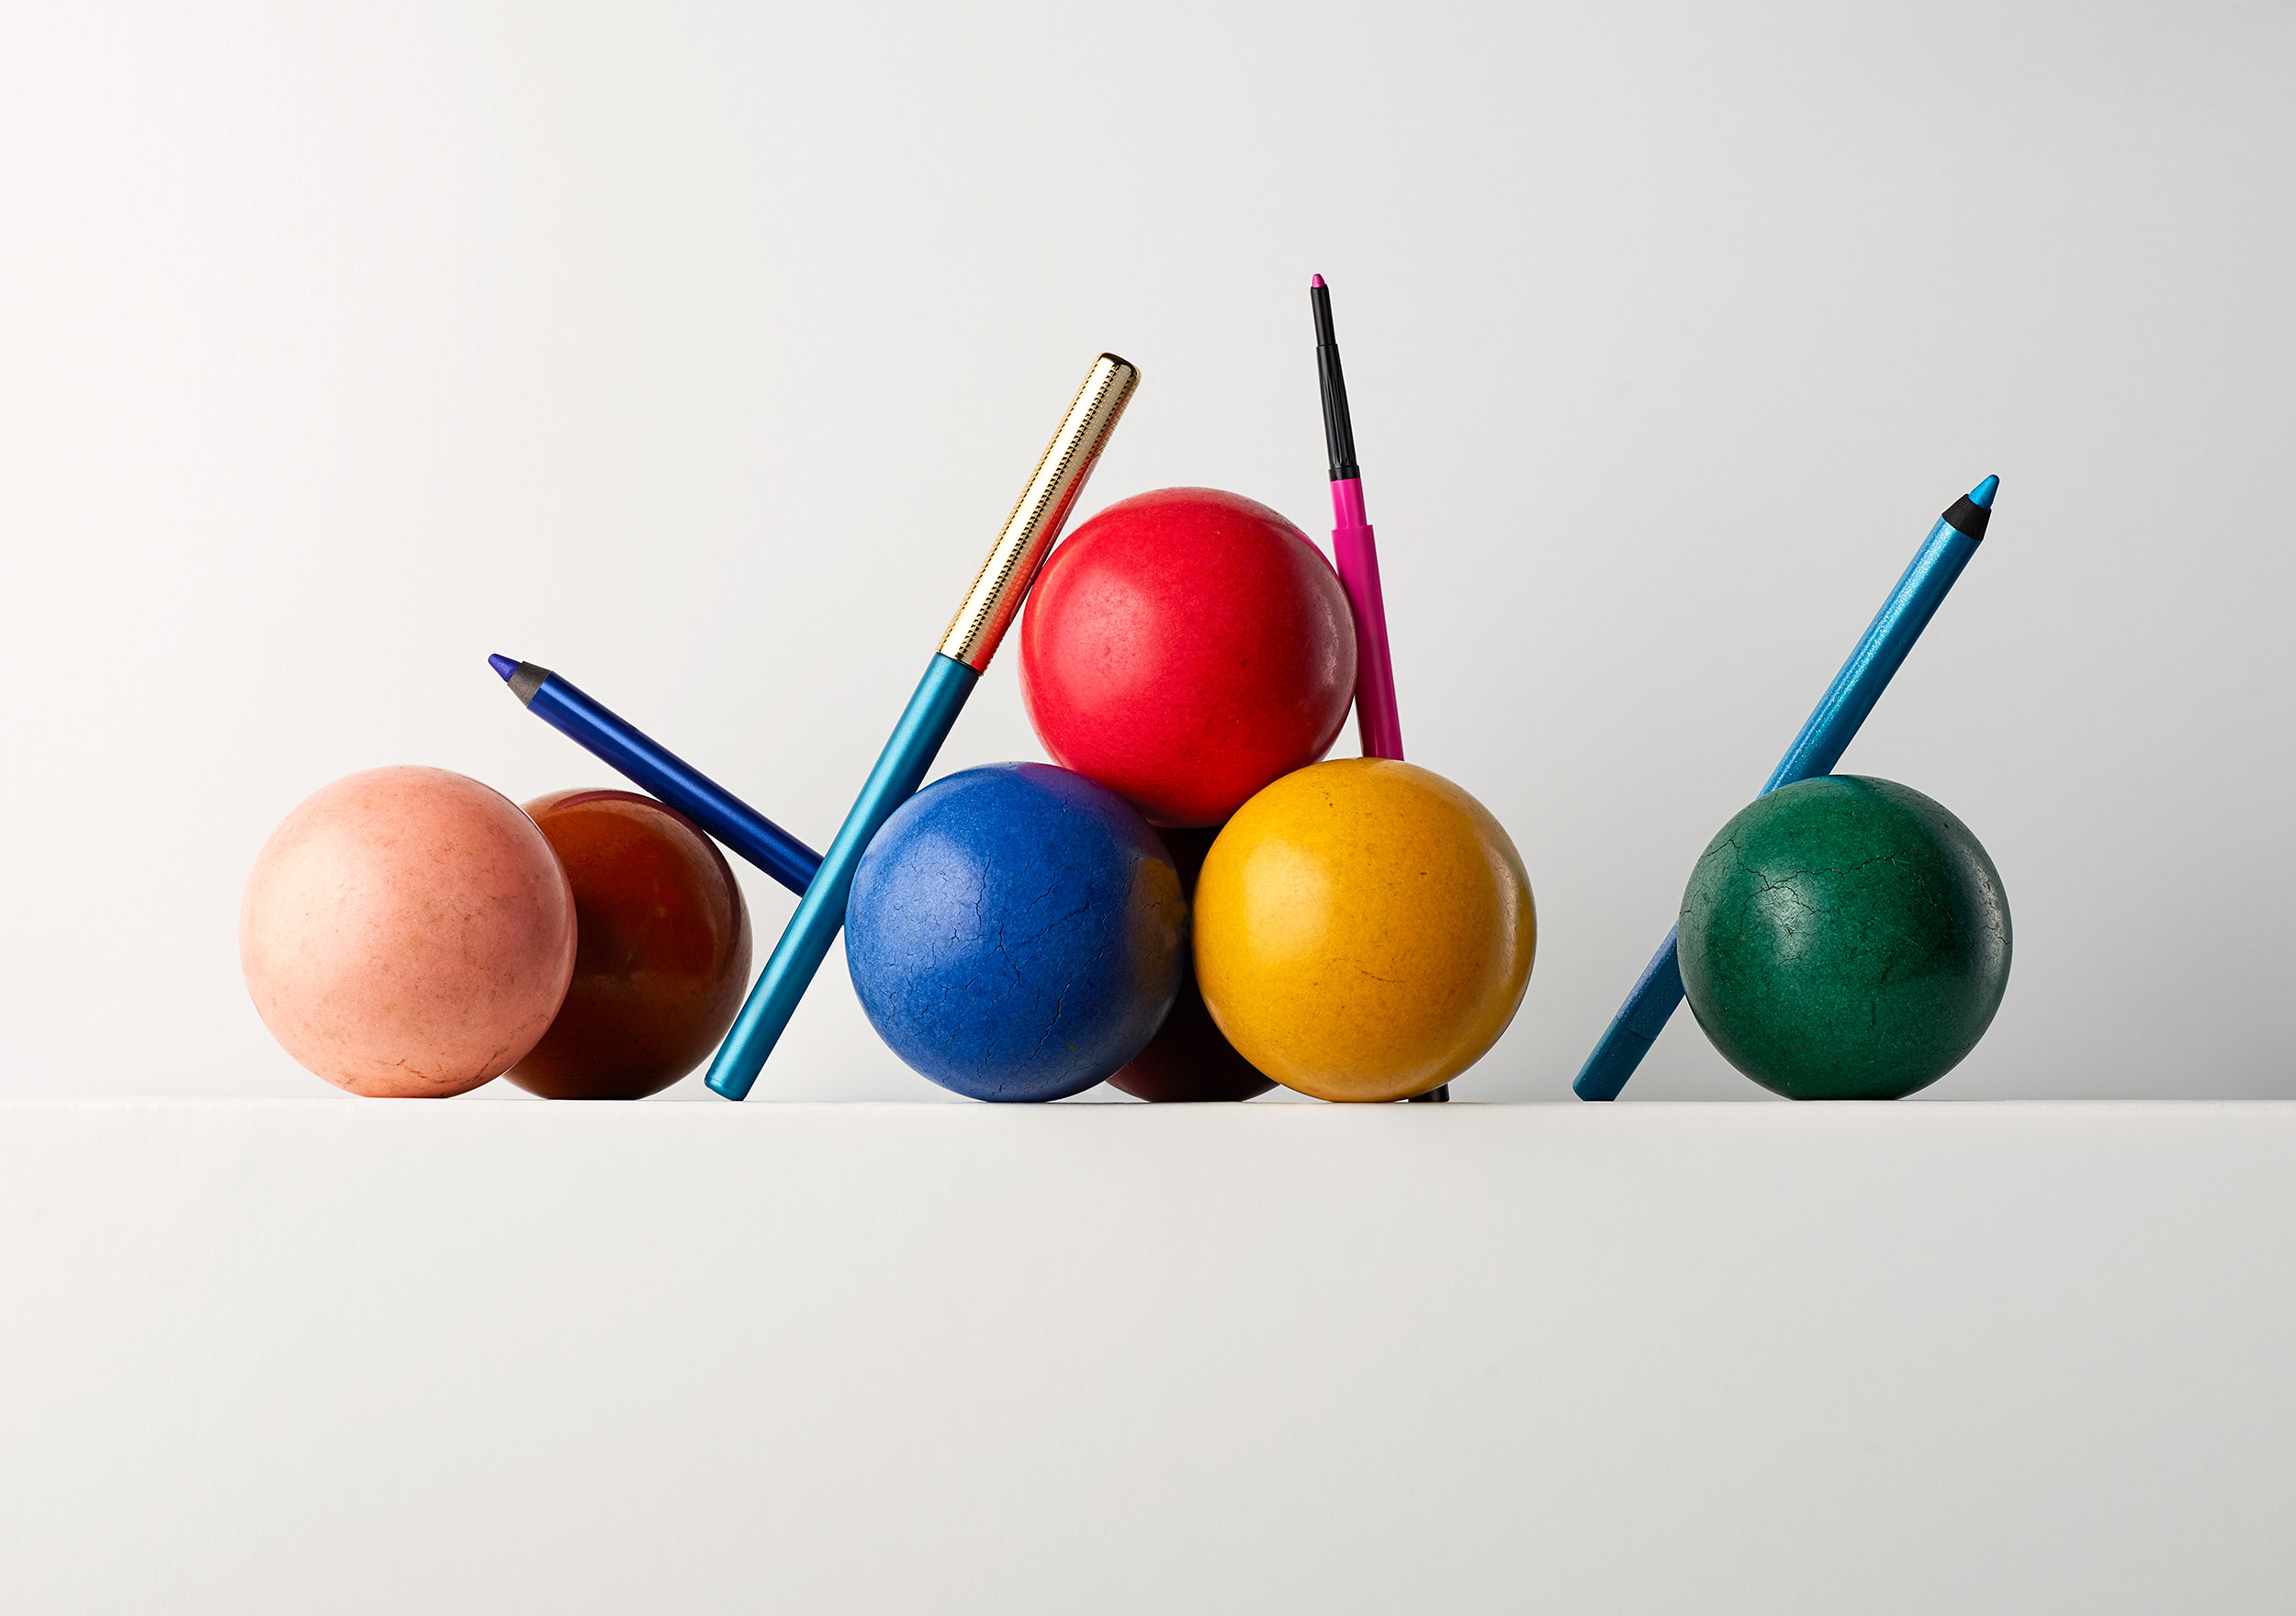 Pencils-still-life-sara-morris-photographer